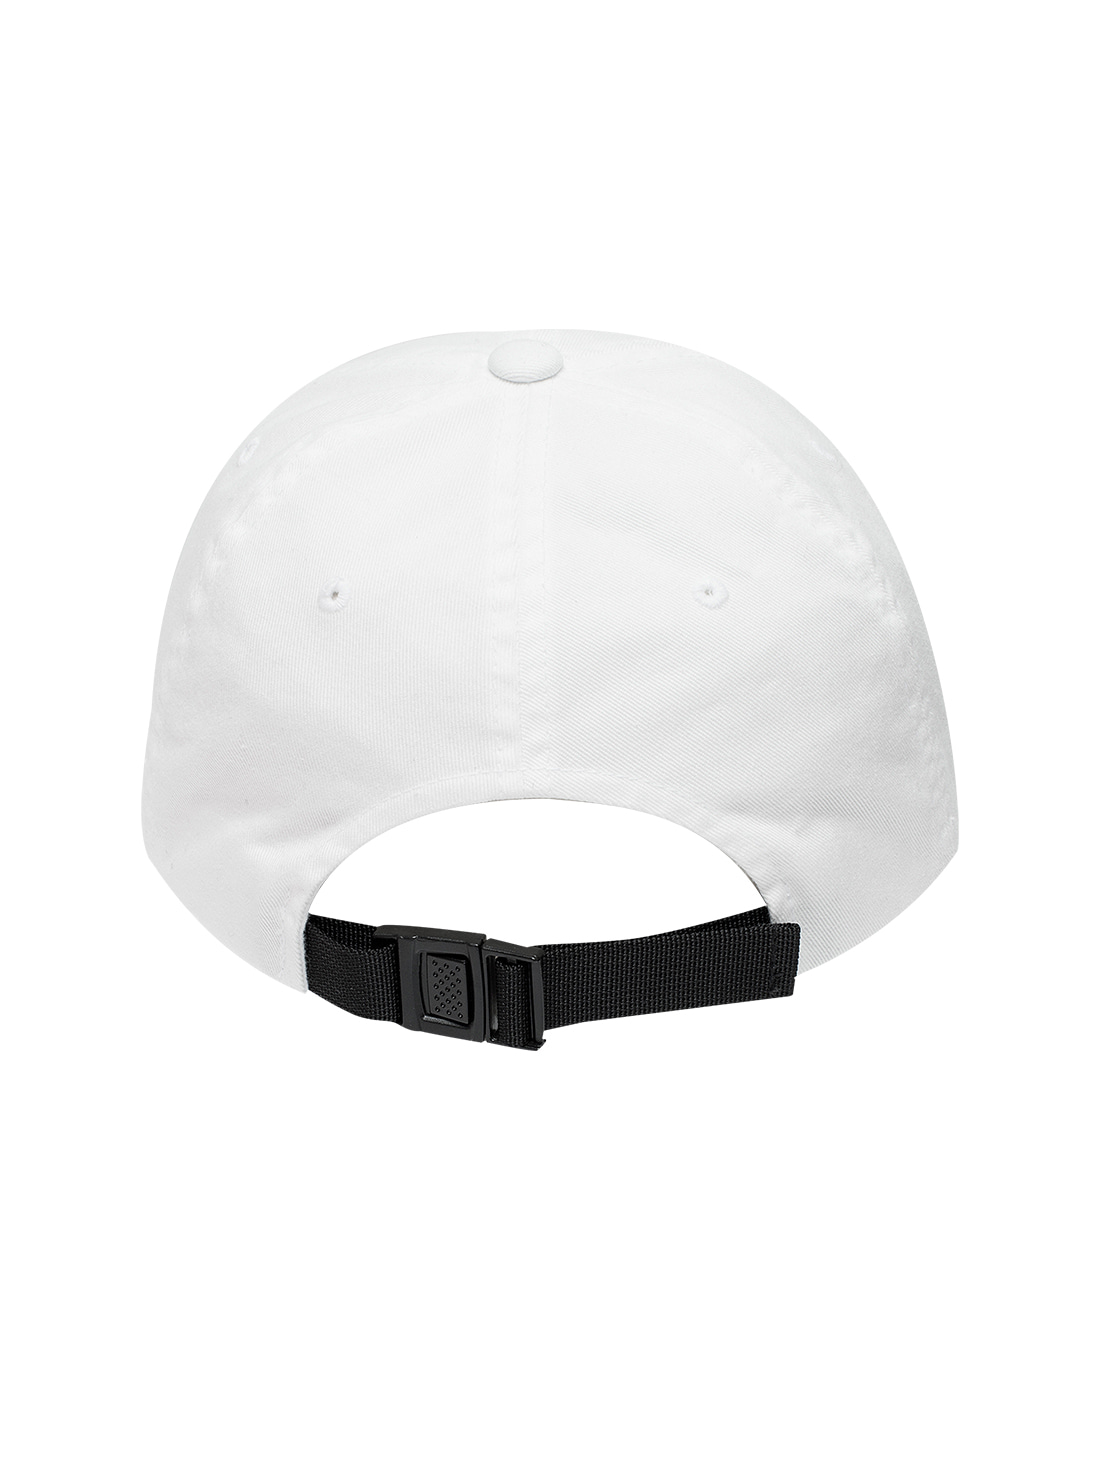 MC BALL CAP - WHITE